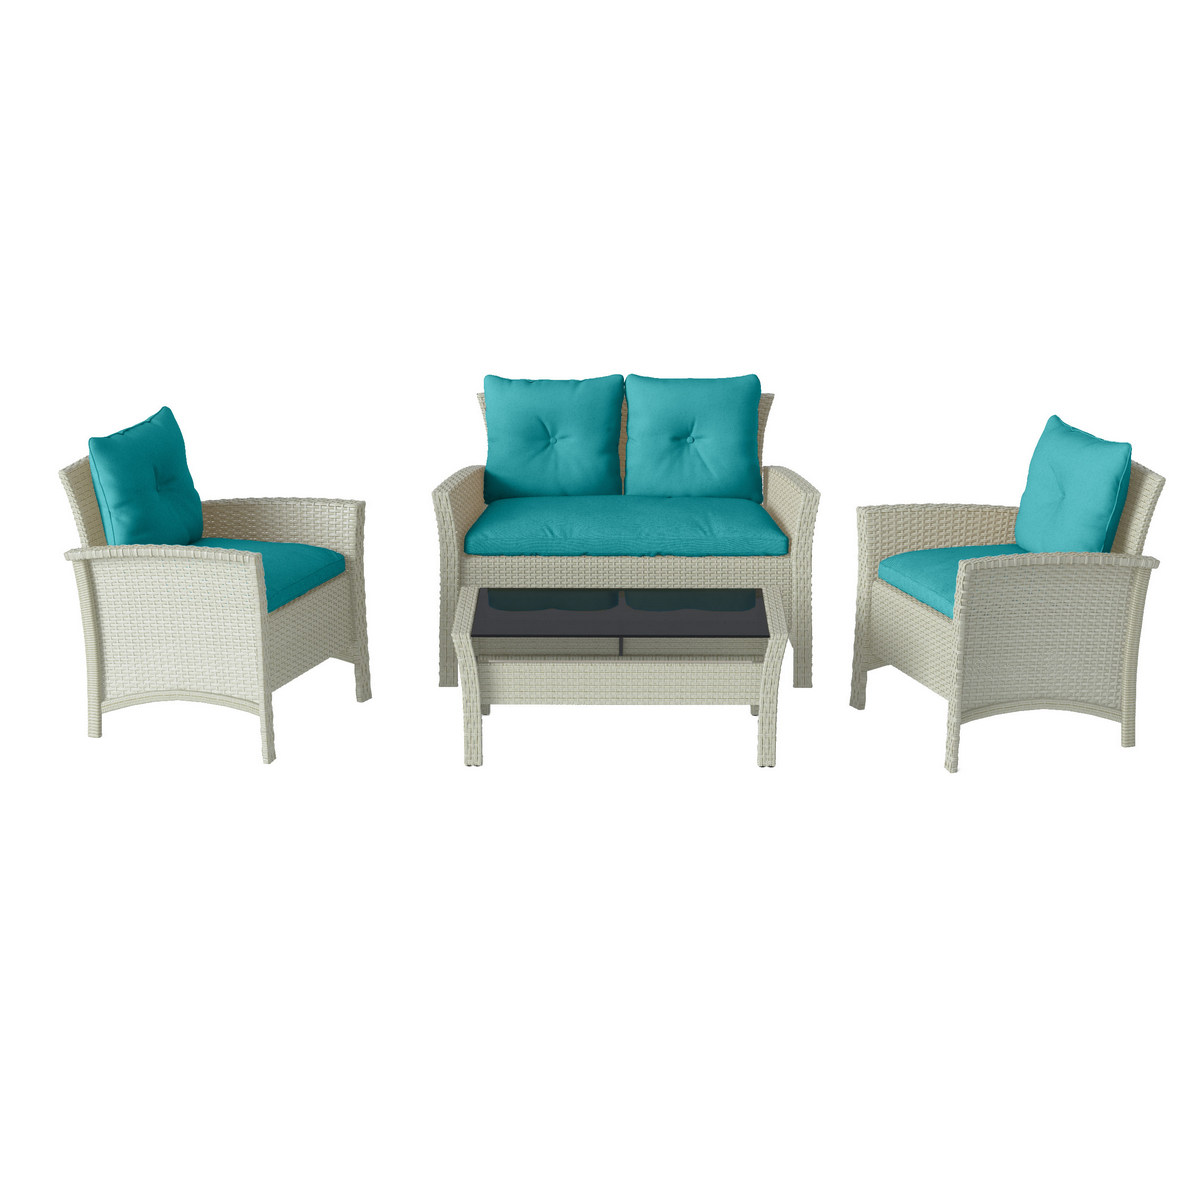 Corliving Distressed Grey Resin Rattan Wicker Patio Set Blue Cushions